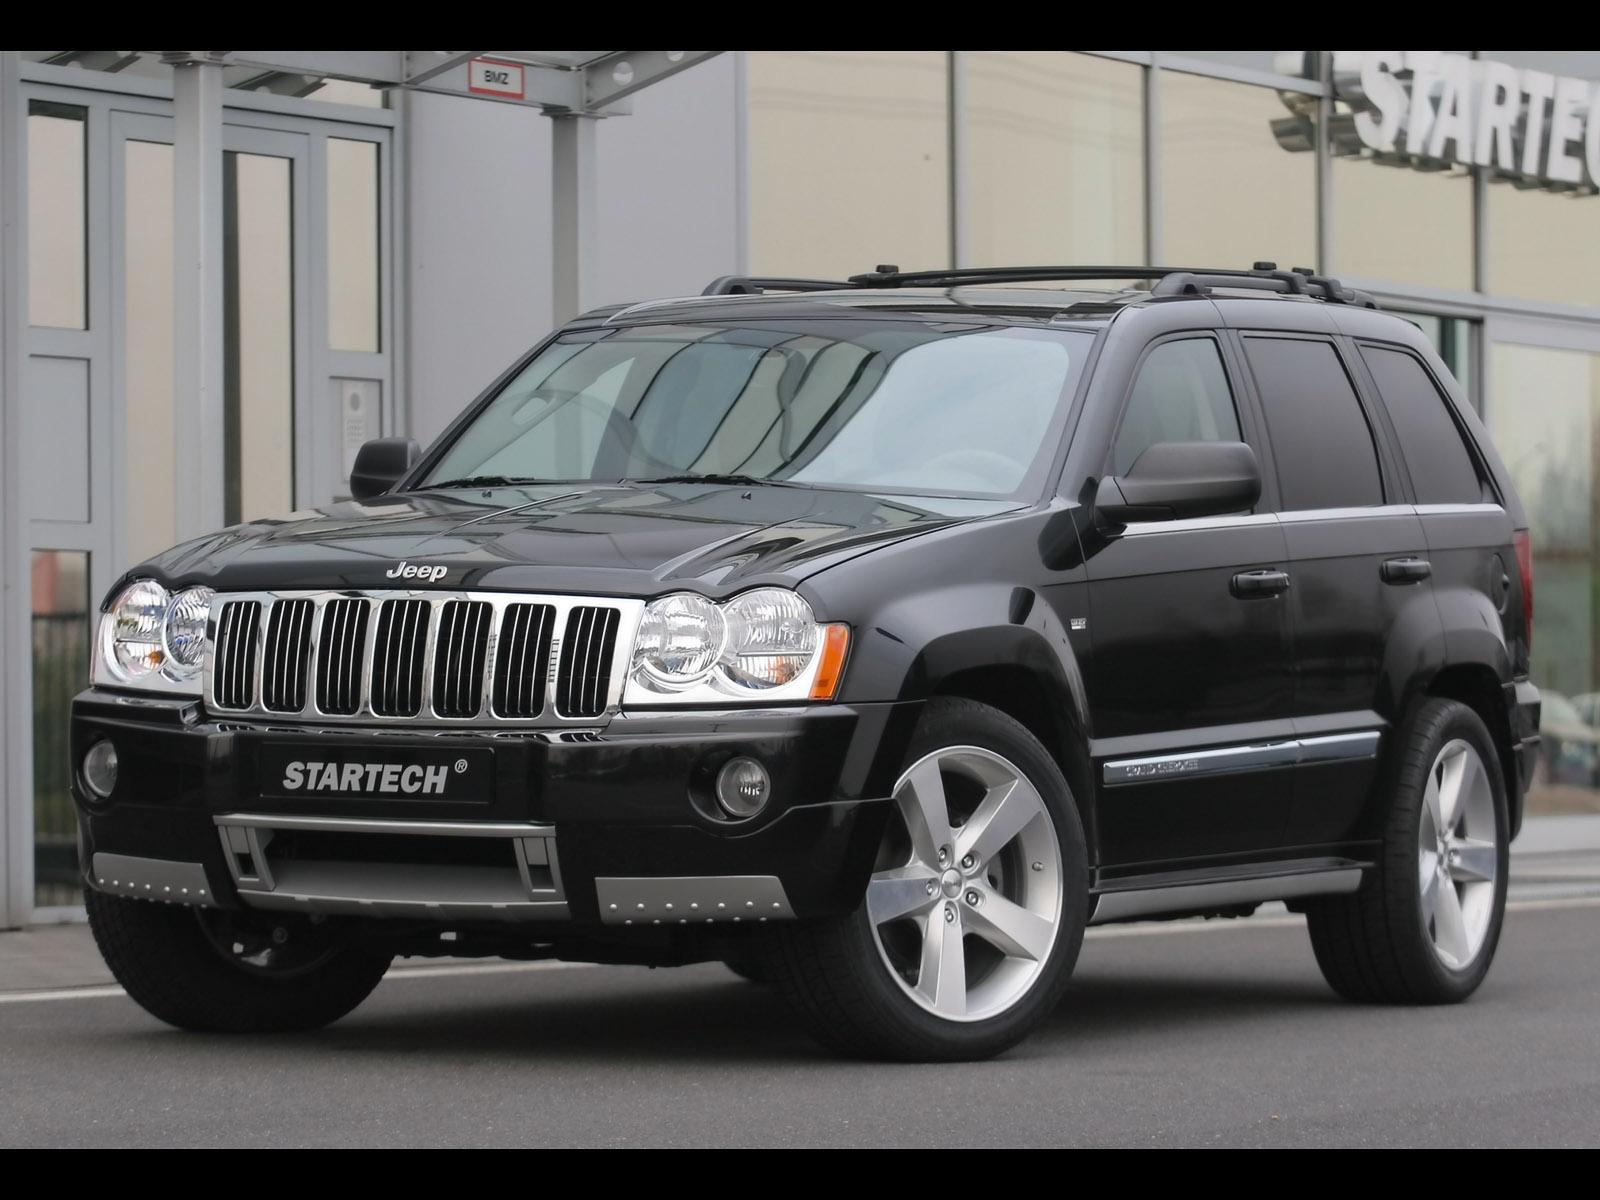 Startech Jeep Grand Cherokee photos  PhotoGallery with 7 pics